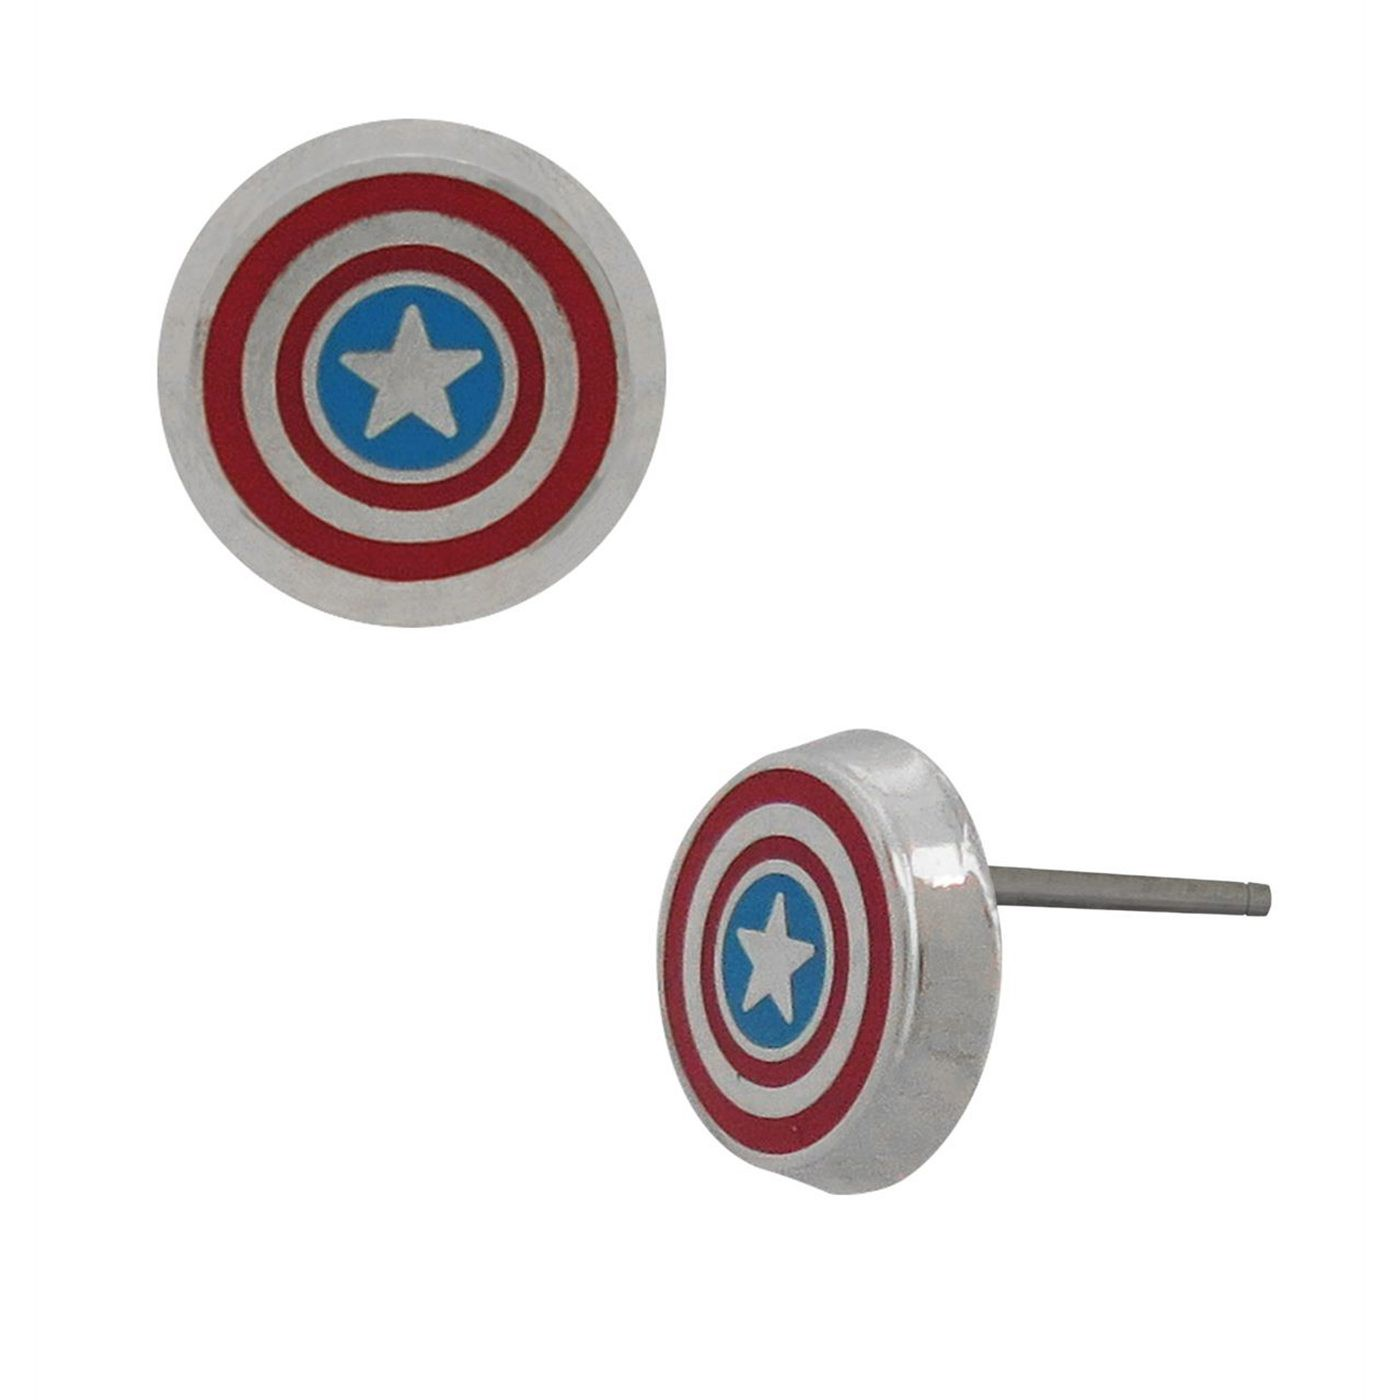 Captain America Shield Stainless Steel Stud Earrings